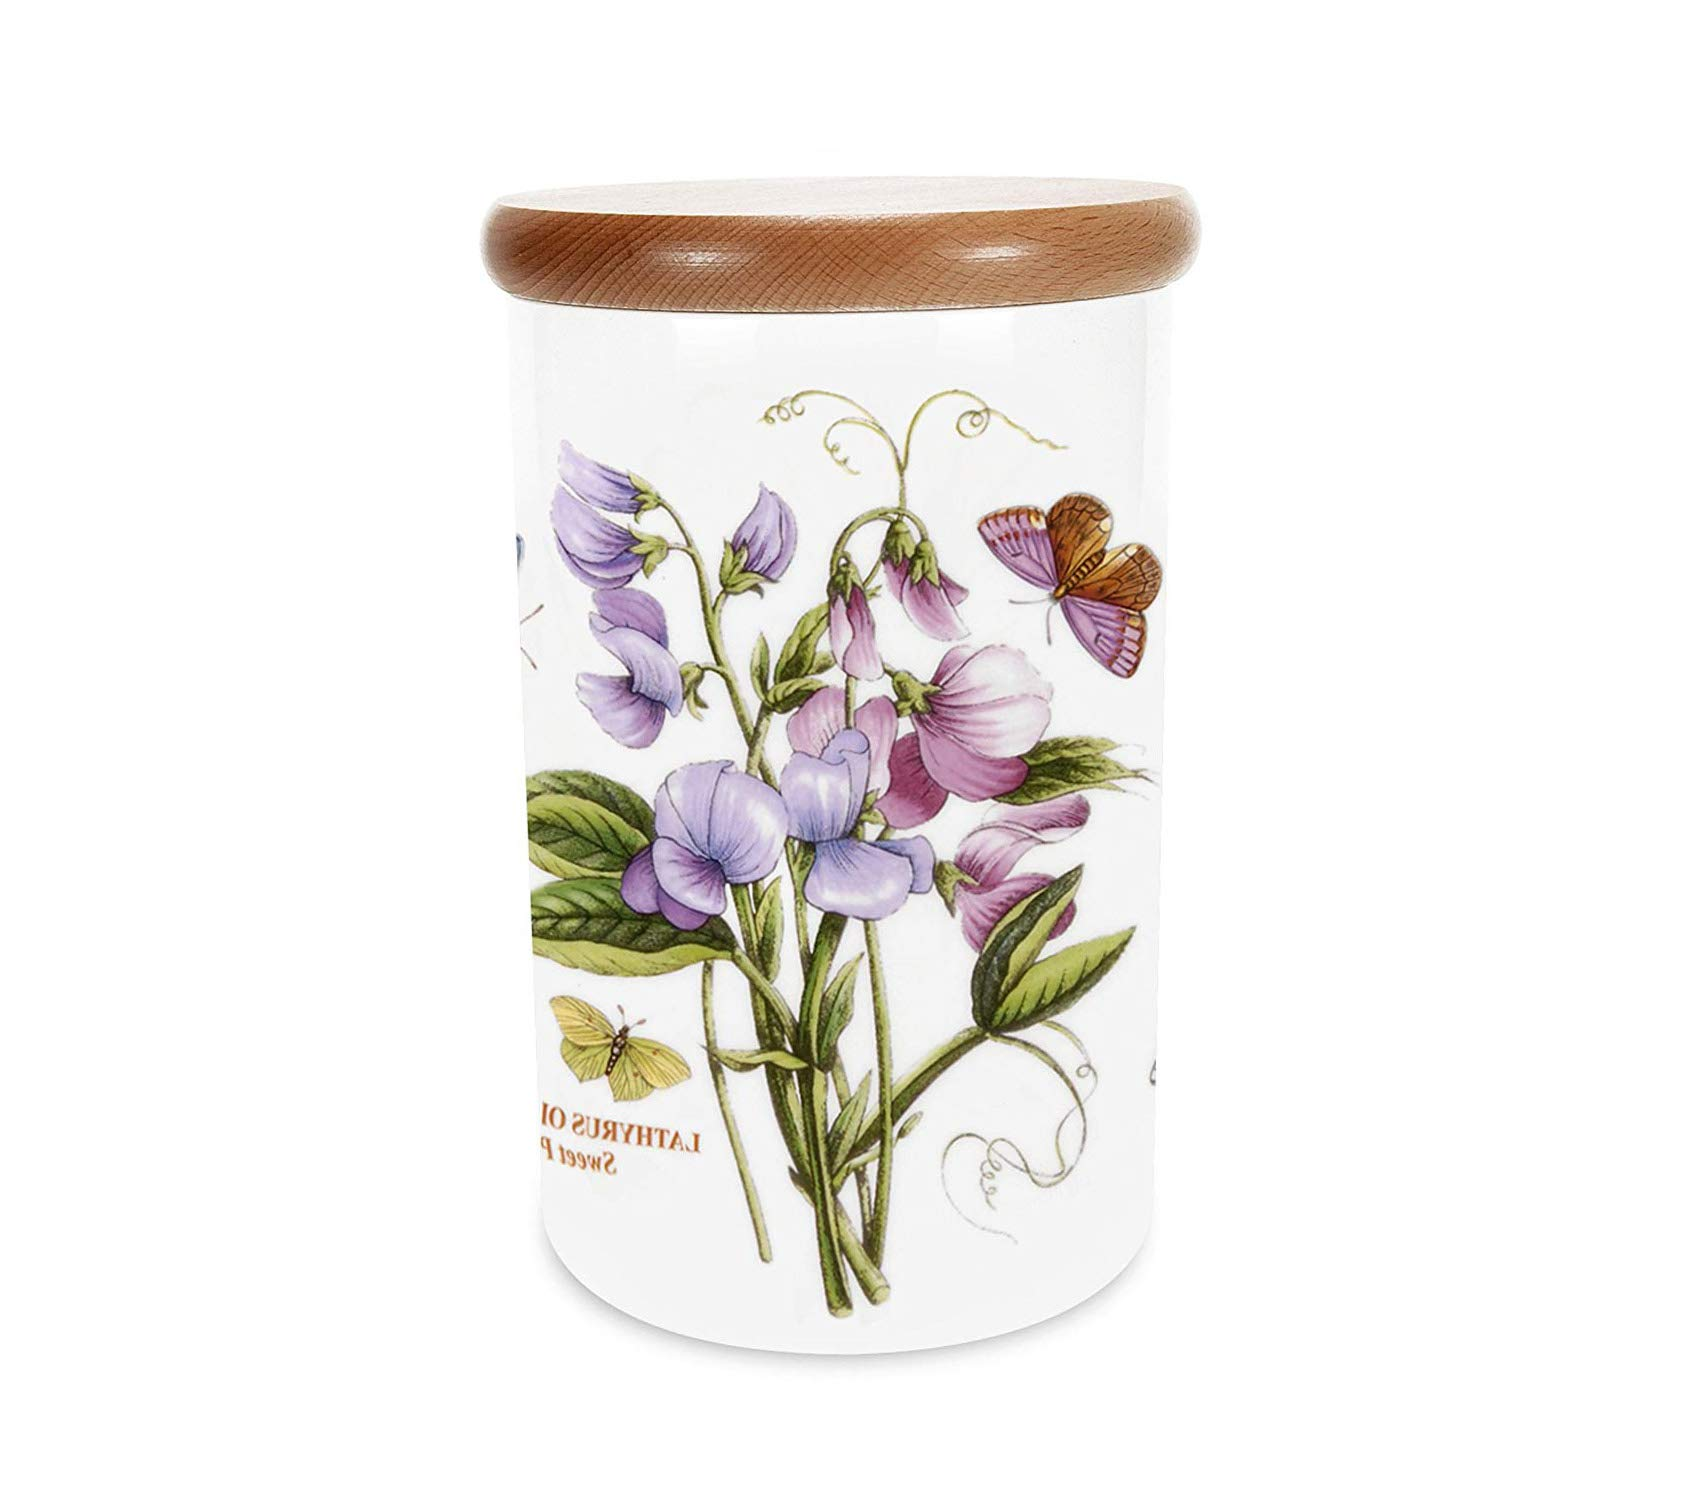 Home Décor Premium Botanic Garden Airtight Canister Large Storage